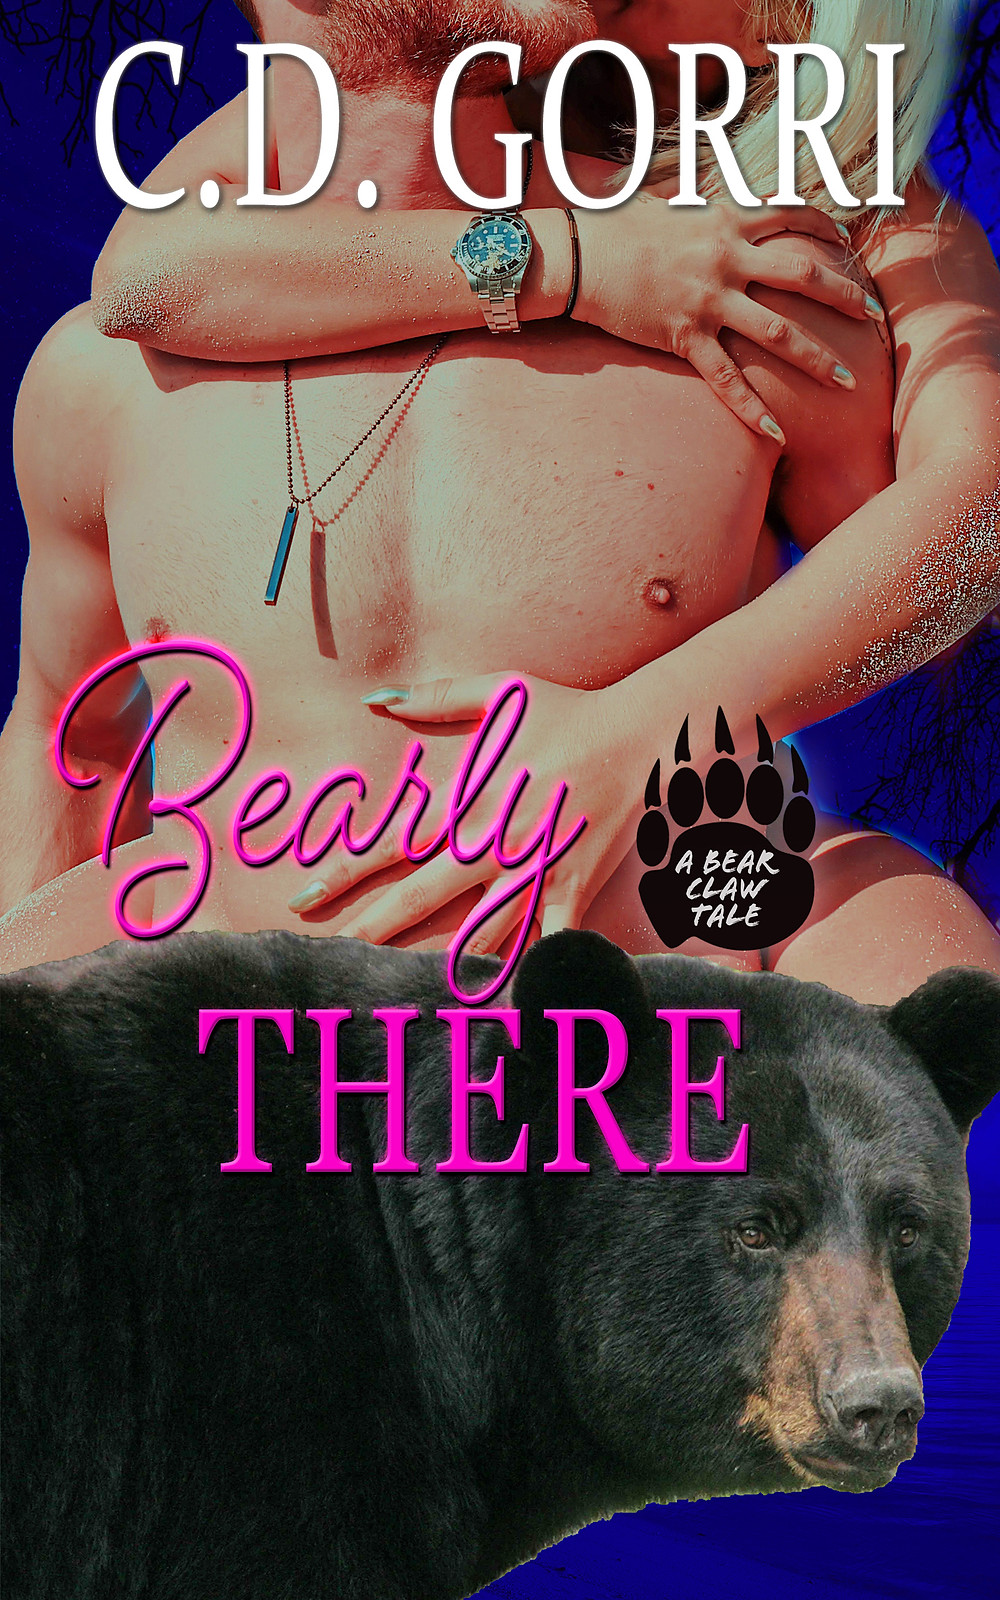 """✨¨✫)  ✨¸.•´¸. ✨•*´¨)✯ ¸. ✨•*¨)   #RELEASEDAY #NEWRELEASE #CDGORRIBOOKS #PNR #SHIFTERROMANCE #SERIES #BEARSHIFTERS #BEARCLAWTALES #KU  Bearly There: A Bear Claw Tale 2 by C.D. Gorri ♥*♡+:。.。♥*♡+:。.。♥*♡+:。.。  """"She knows he's the one, but he is fighting it tooth and nail, or in this case, claw!""""  Krissy Sposa has been dreaming of her mating to gorgeous Bear Shifter, Taylor Devlin, since she was a teenager! But the sexy blonde Shifter is determined to remain a play bear despite her belief that they are fated mates.   Taylor has known the curly haired she-Bear ever since she started working for his family at the original Bear Claw Bakery location. Sure, he knows about her school-girl crush, but there's no way he is going to give in to temptation. No matter how sweet she looks with flour on her shirt and cream filling on her lips, Krissy Sposa is off-limits.   When a lone Bear comes sniffing around Krissy, Taylor has a decision to make. Claim her as his own or watch her get swept away by a handsome stranger!  ✨¸.•´¸. ✨•*´¨)✯ ¸. Links: Amazon US: https://www.amazon.com/gp/product/B07MSJ9FDD Global: https://www.books2read.com/bearlythere ✨¸.•´¸. ✨•*´¨)✯ ¸. ✨•*¨)  ✨¨✫)"""